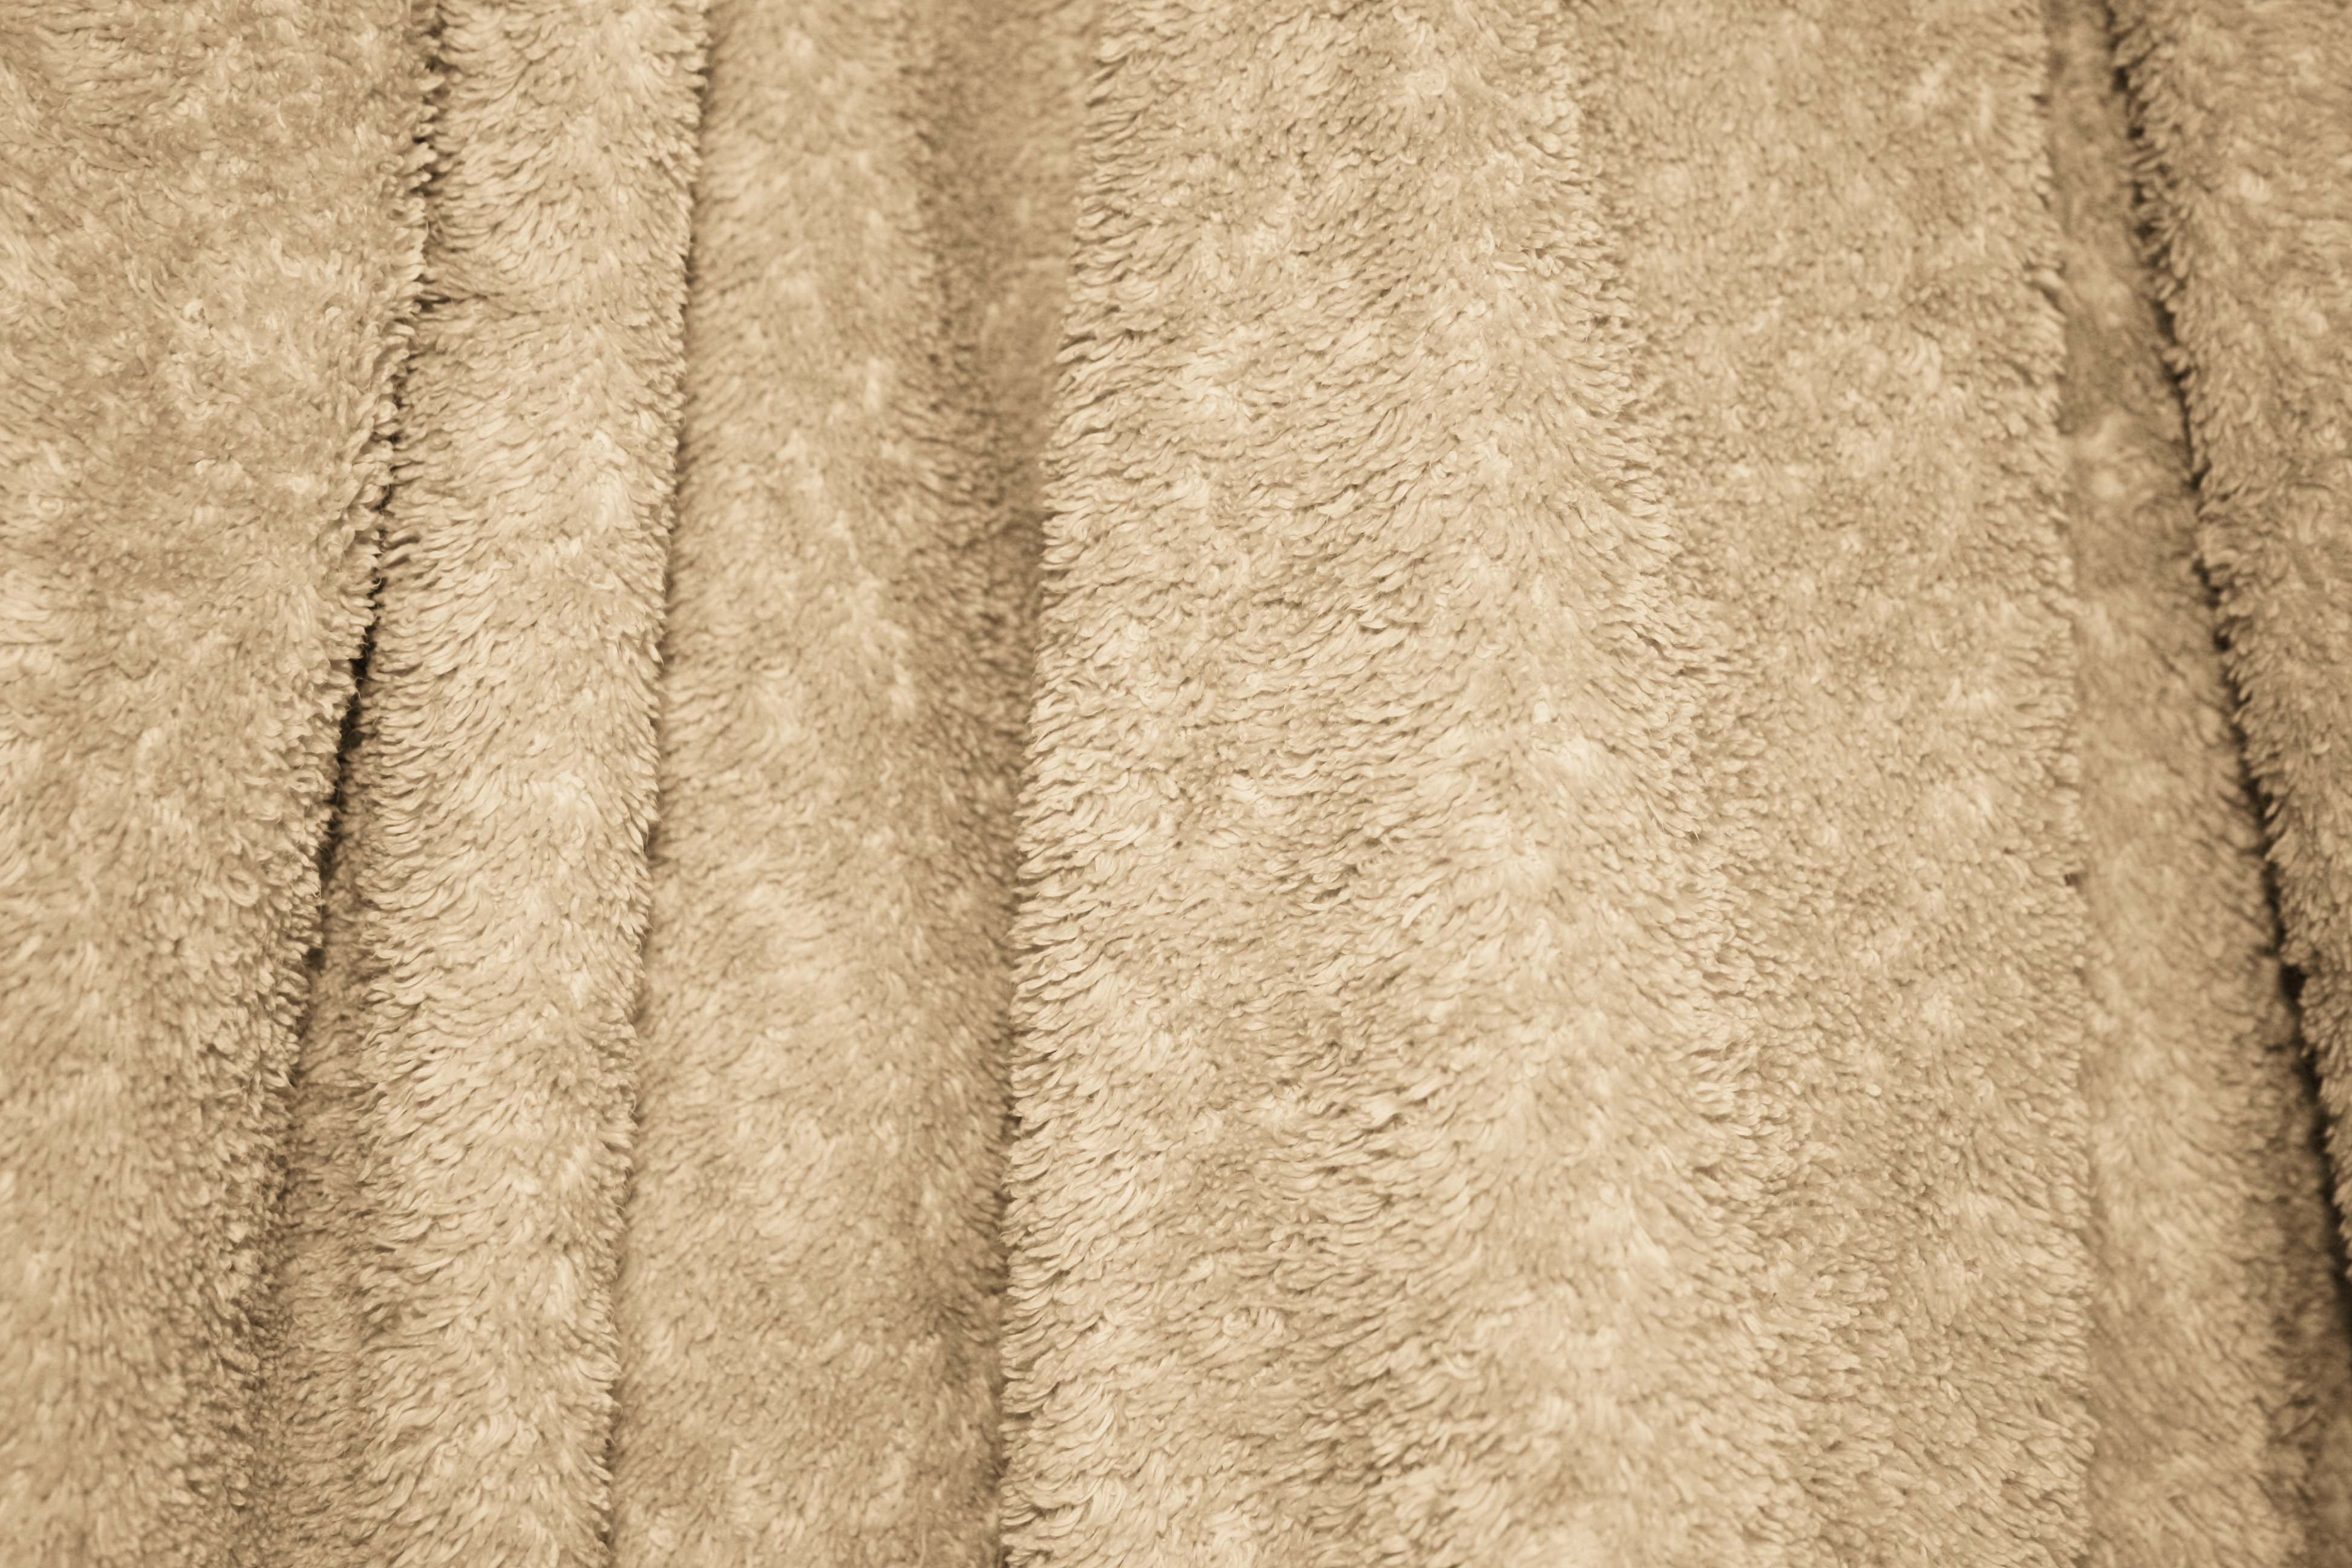 Well-liked Tan Terry Cloth Bath Towel Texture Picture | Free Photograph  NC98